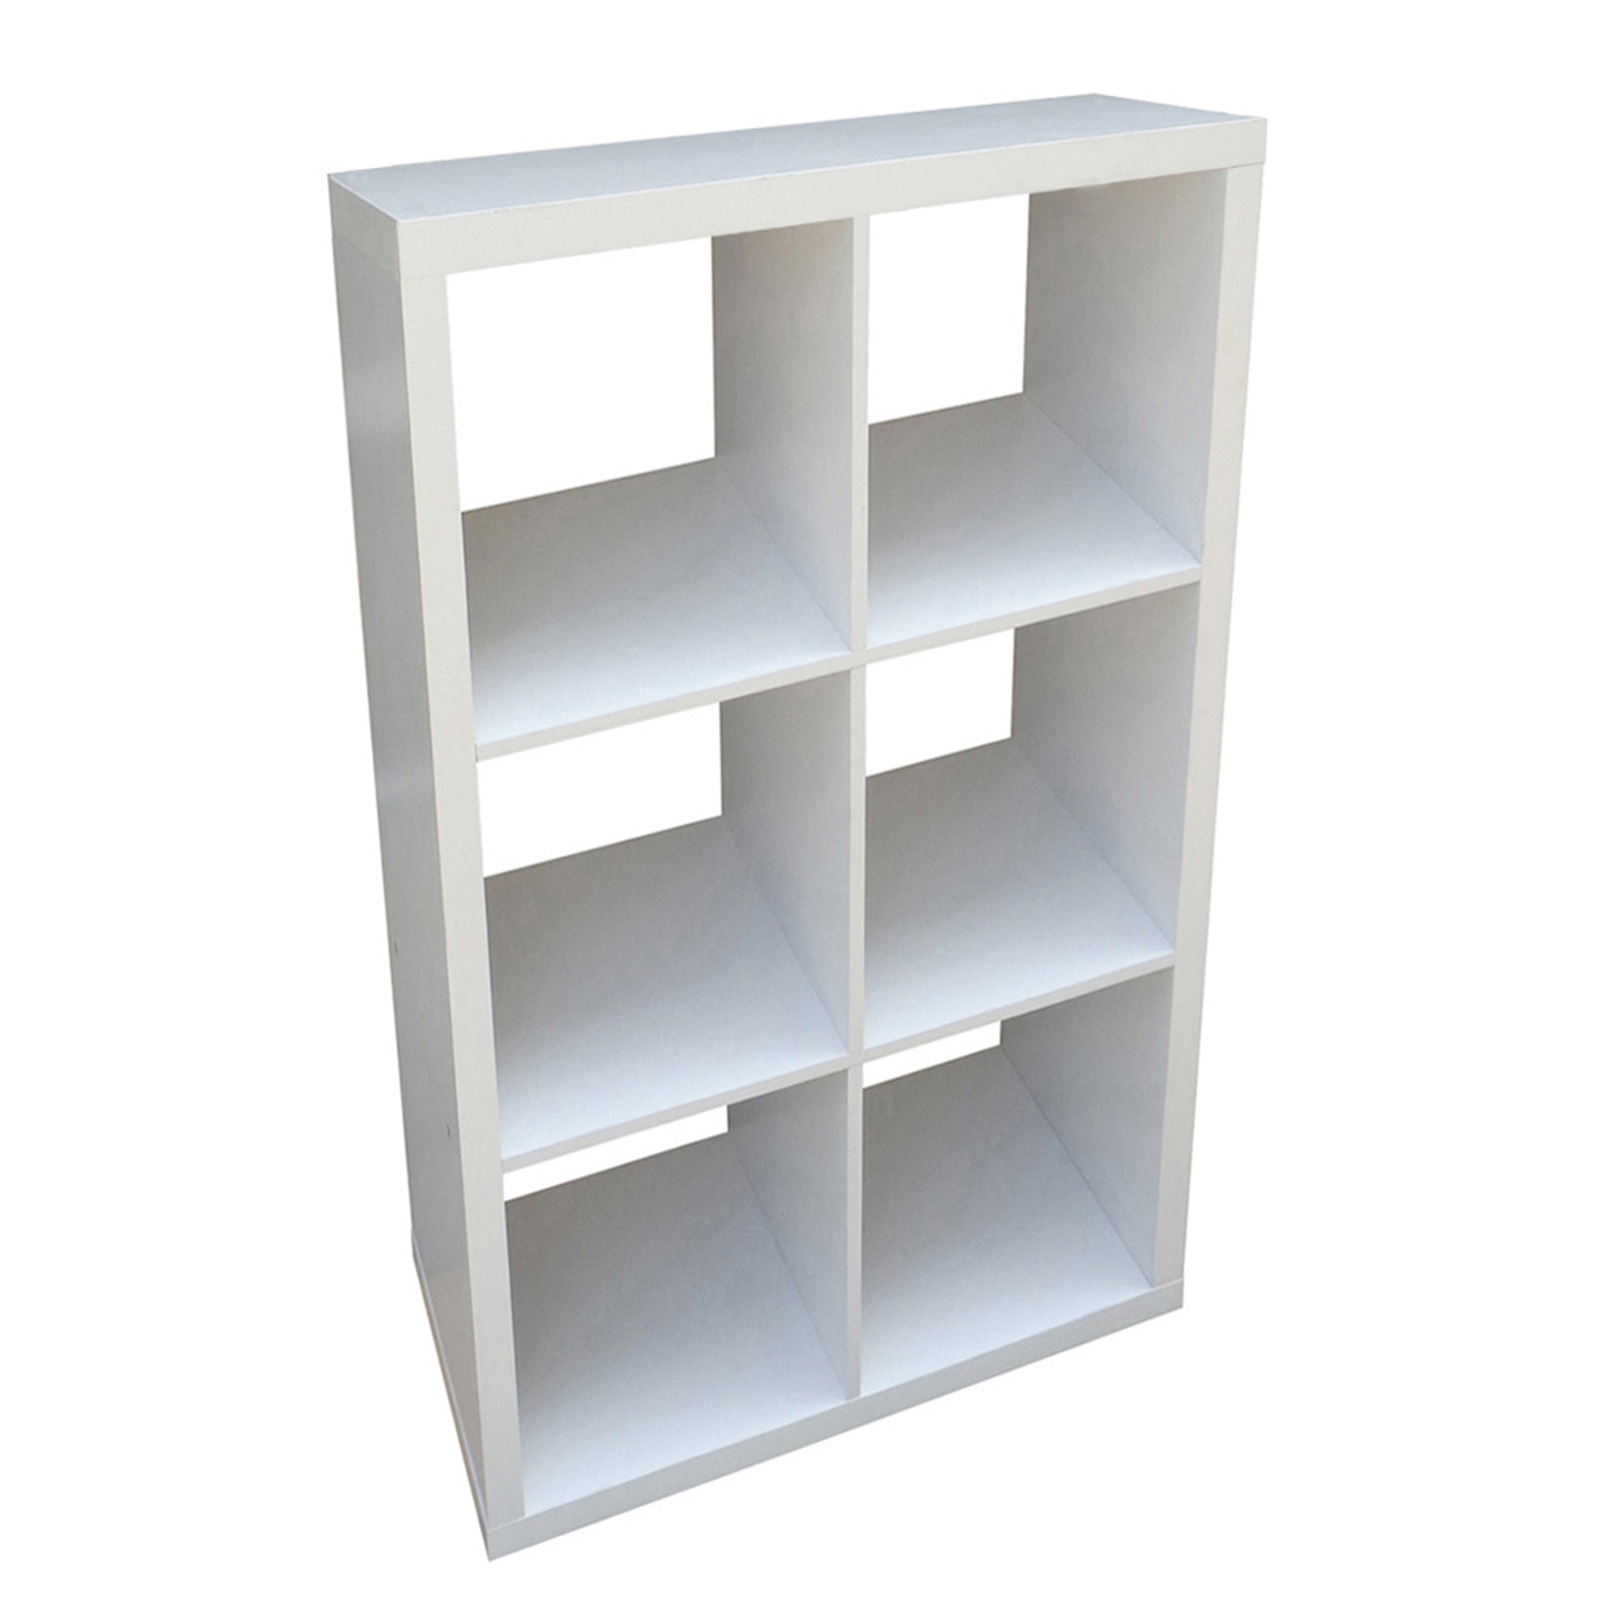 Recollections Craft Storage System 6 Cube Honeycomb, White